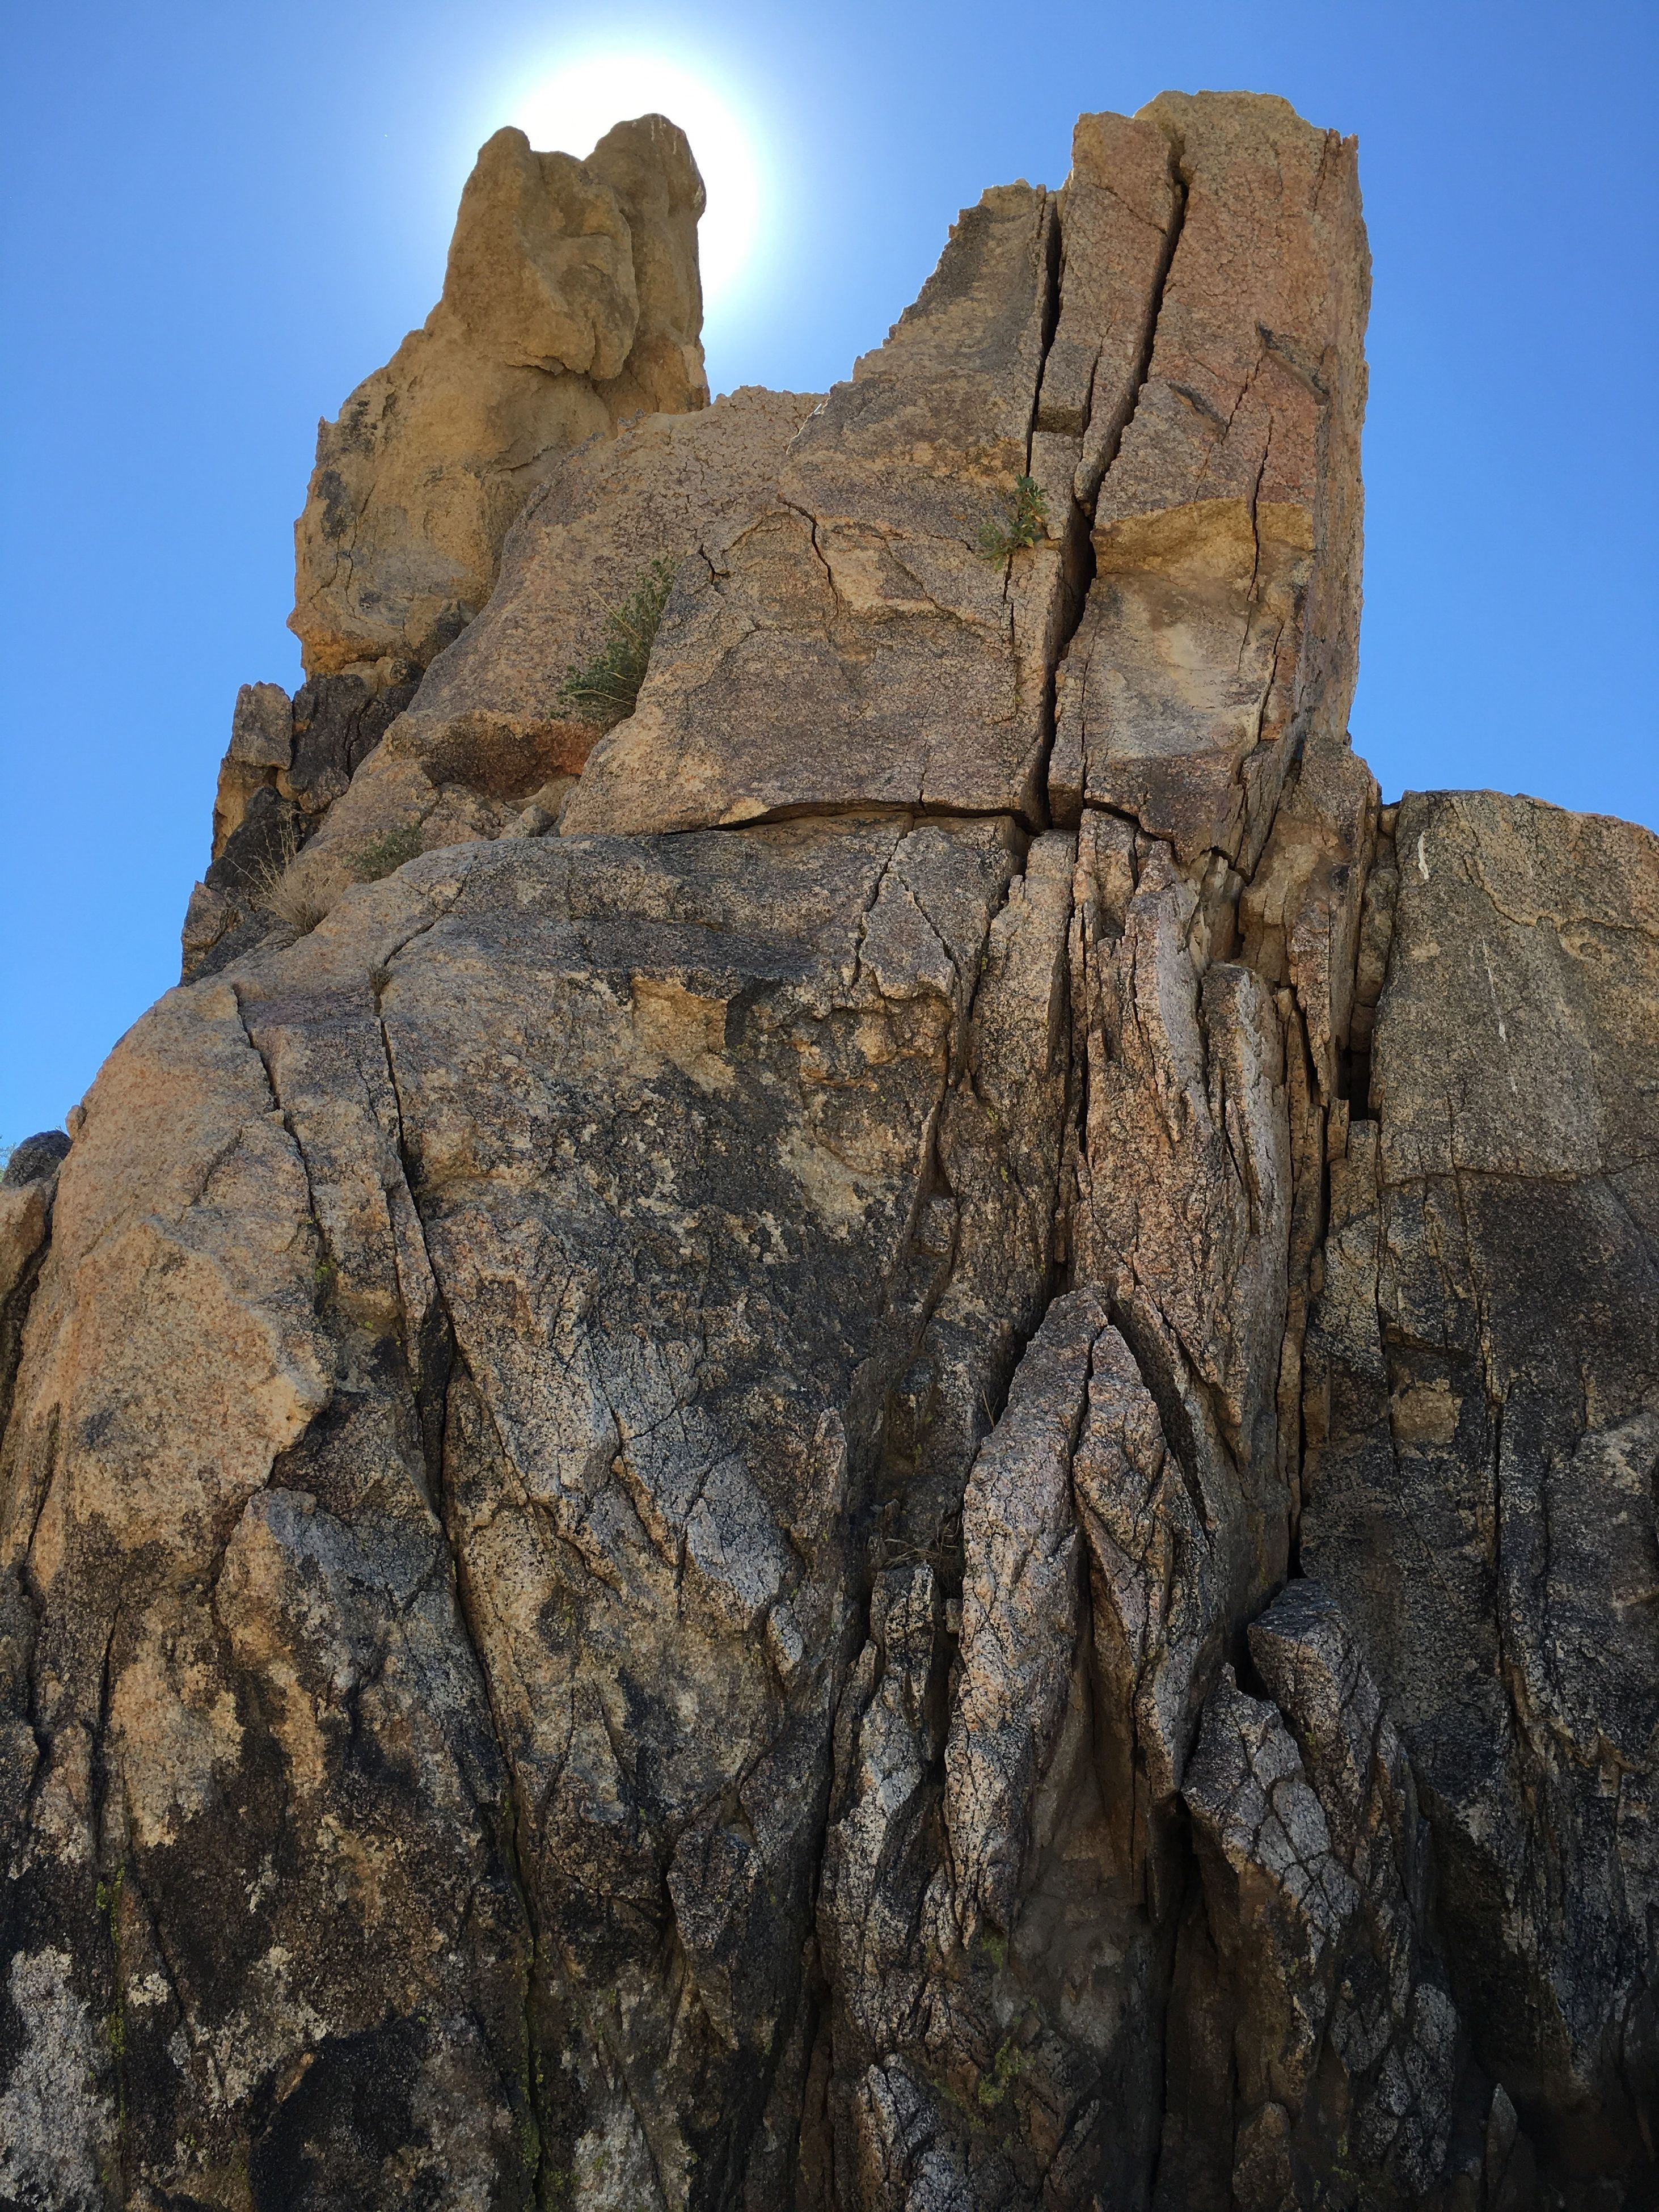 low angle view, sky, weathered, rock formation, nature, the past, outdoors, no people, tourism, beauty in nature, geology, cloud - sky, rocky, tranquility, history, famous place